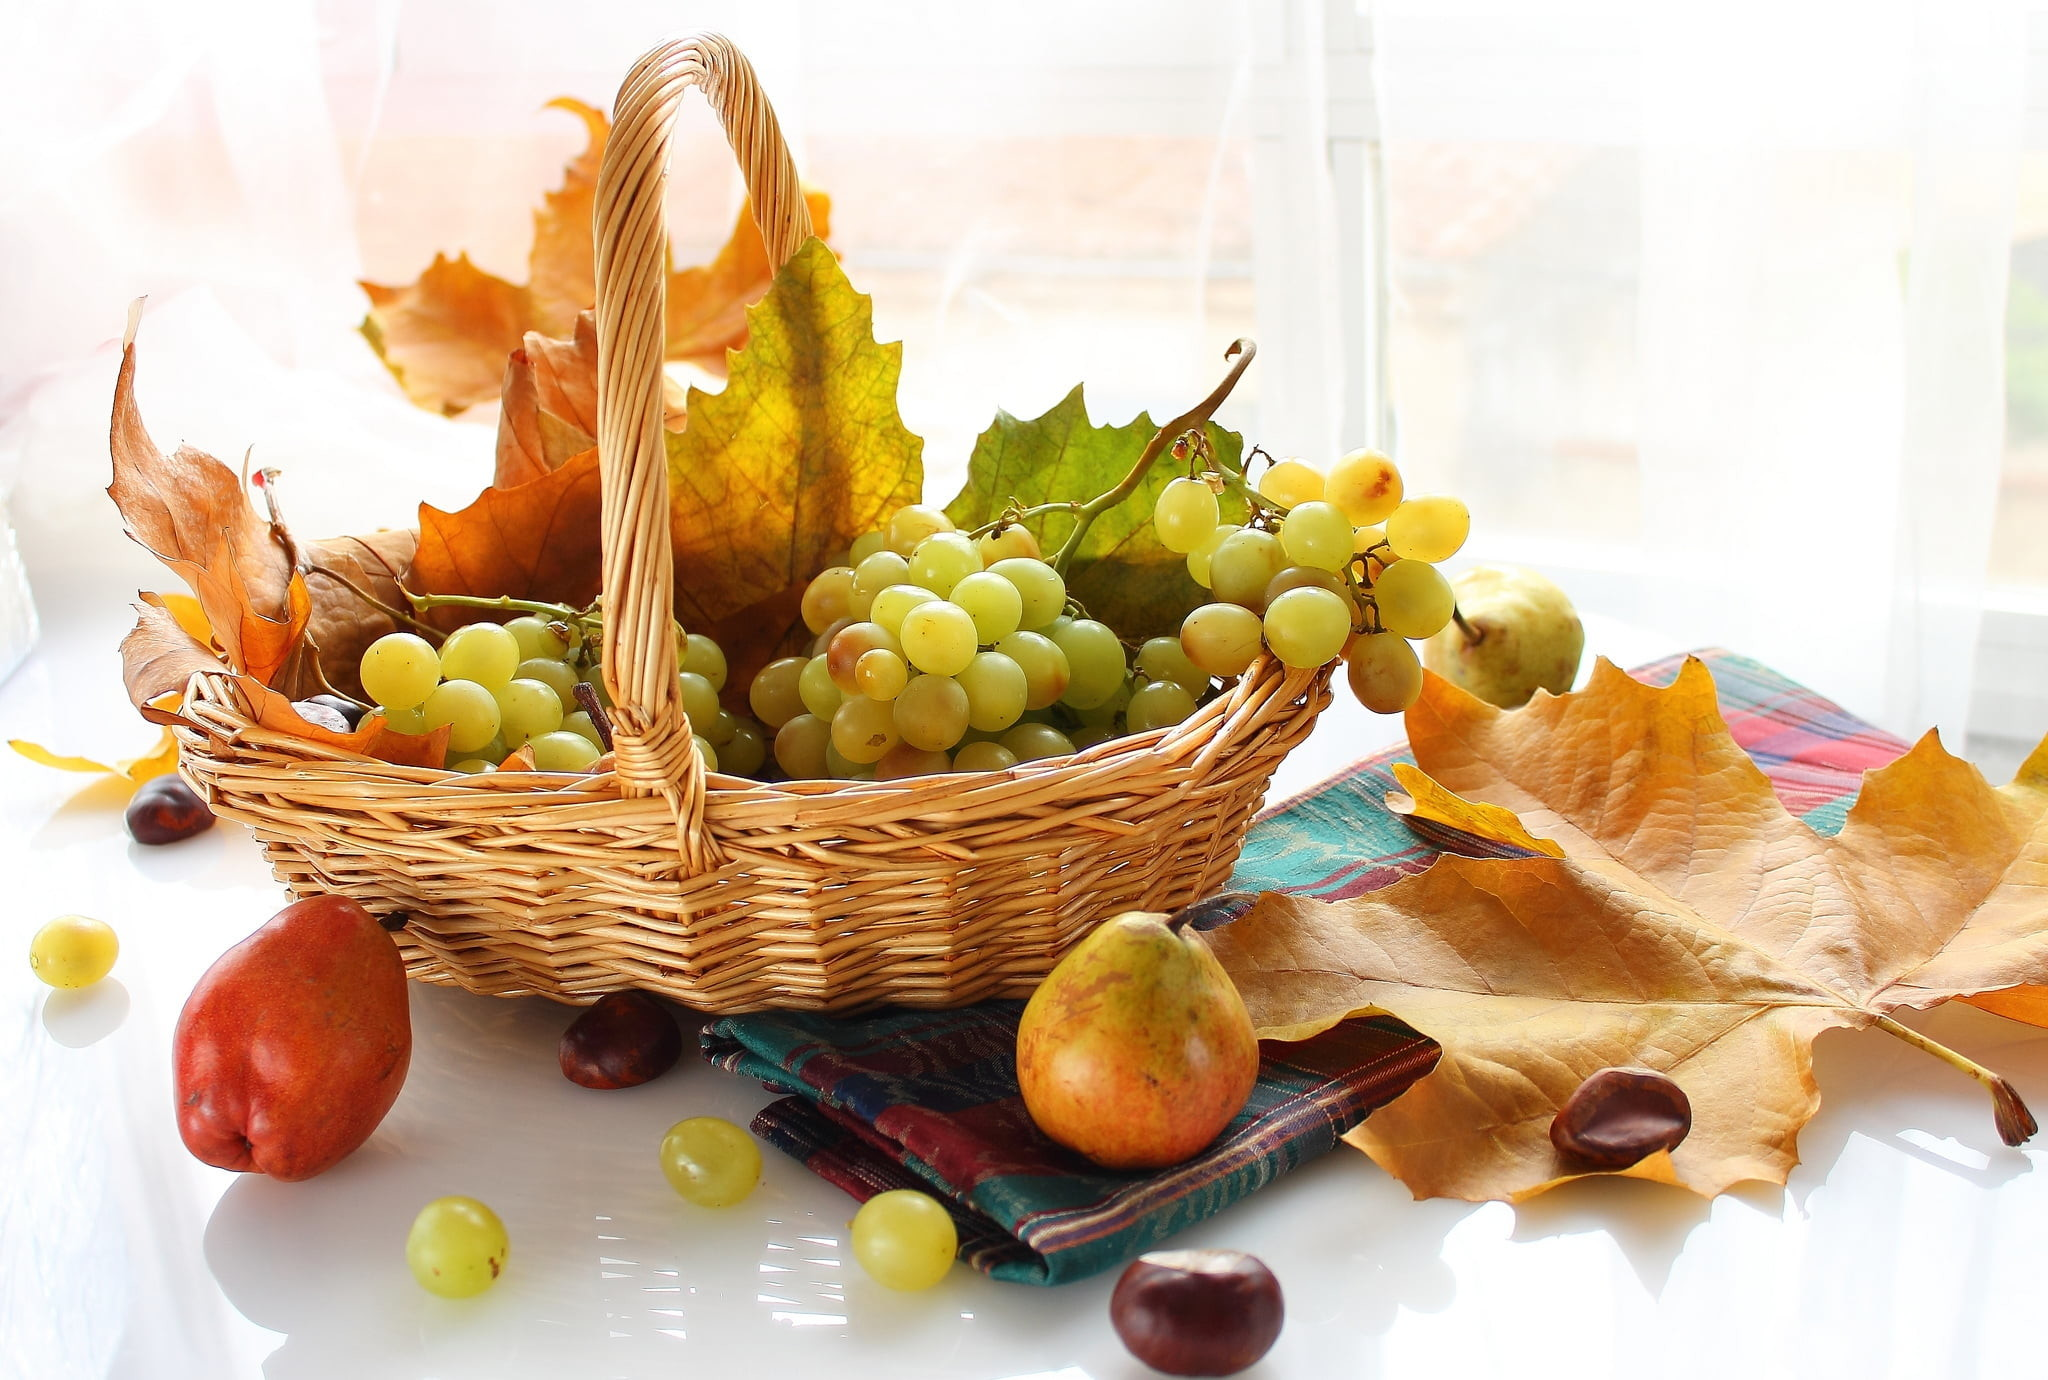 Res: 2048x1380, photo of fruits in basket HD wallpaper